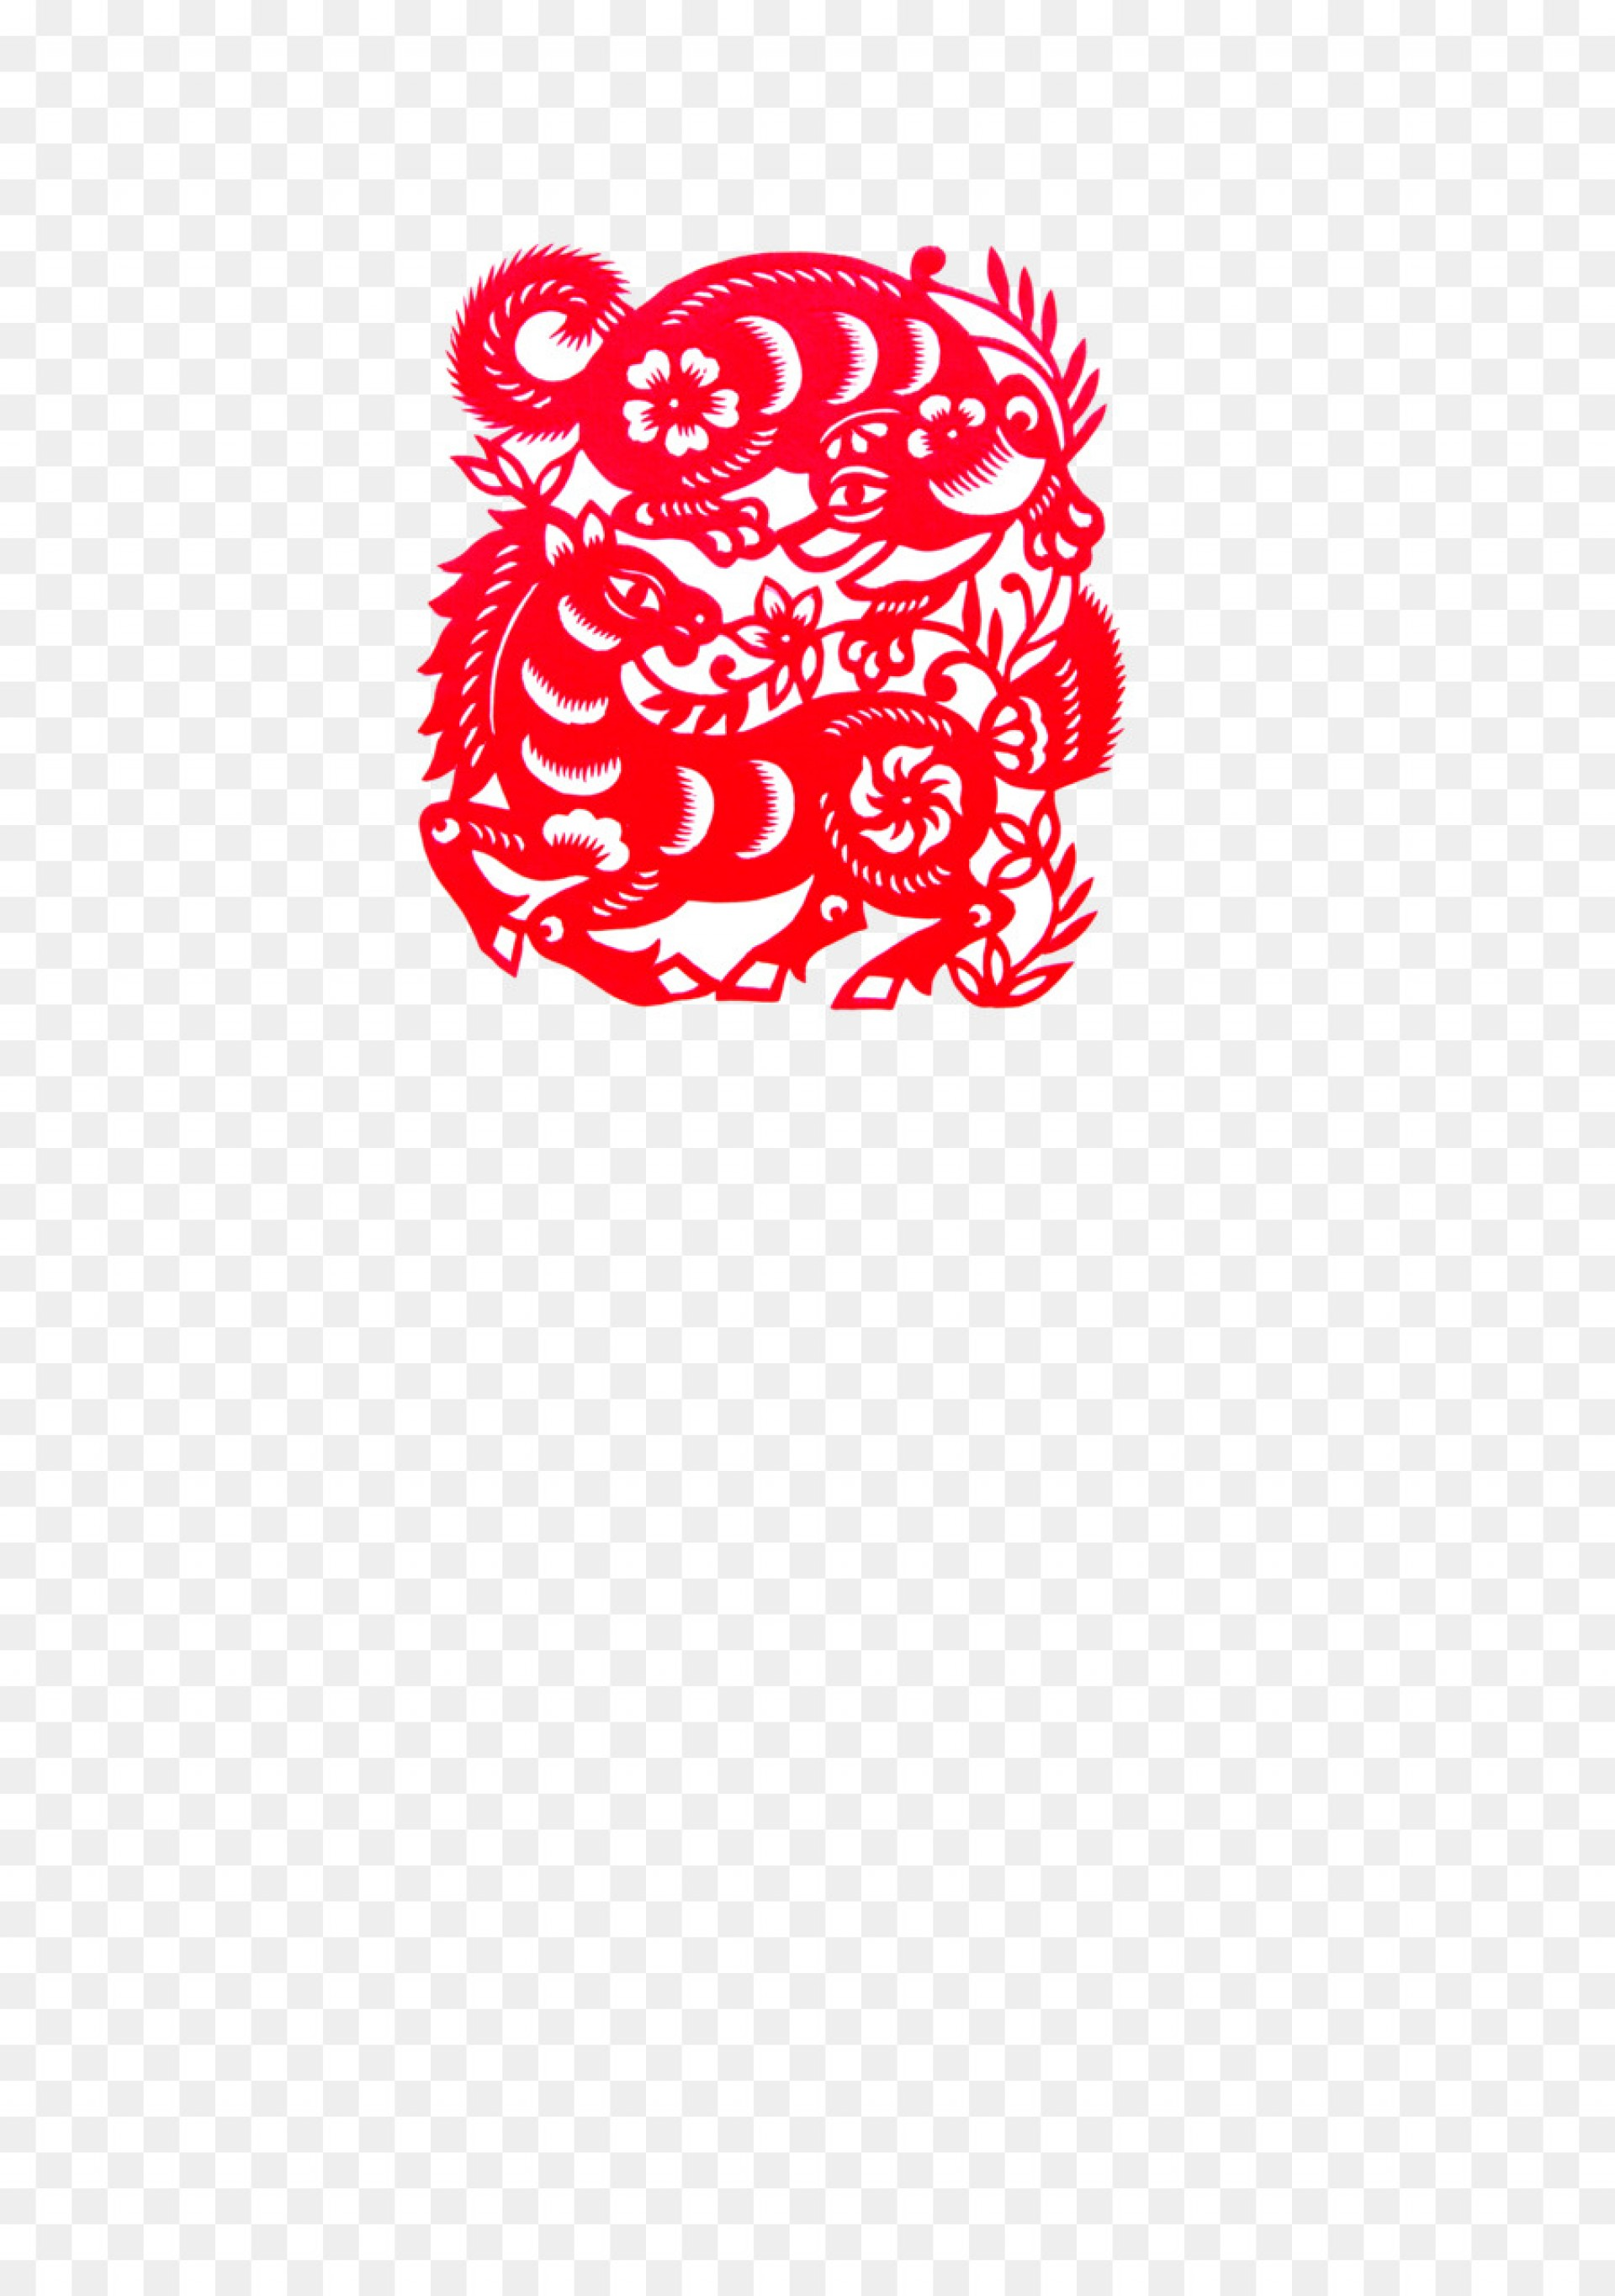 006 Incredible Chinese Paper Cutting Template Highest Clarity  Pdf Dragon1920